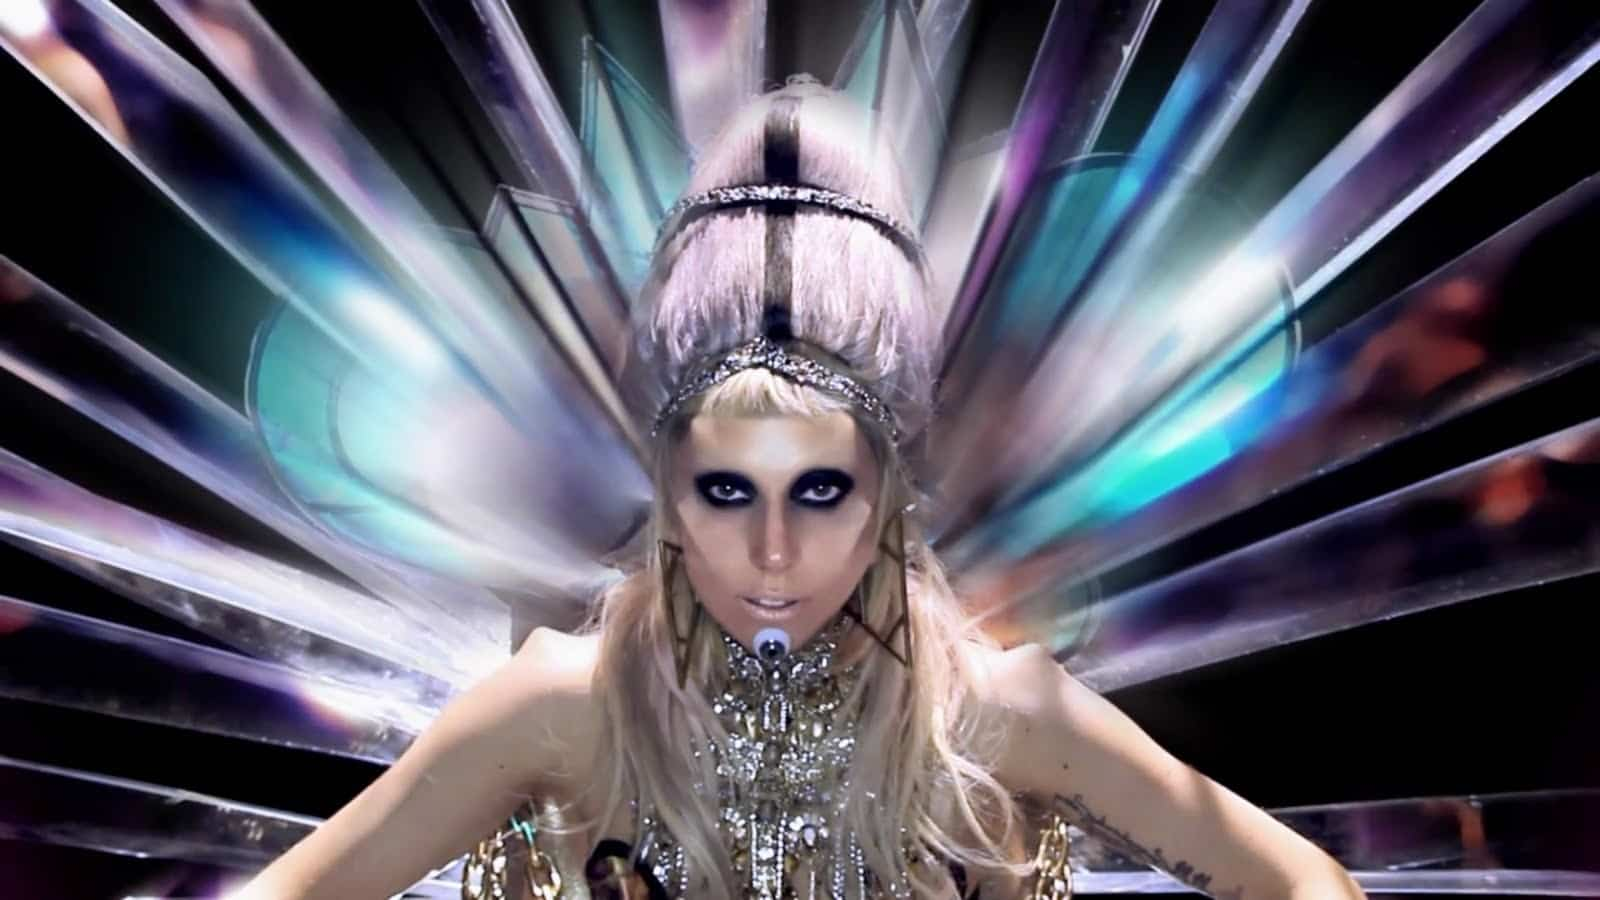 film reviews   movies   features   BRWC Lady Gaga - Born This Way, A Belated Review